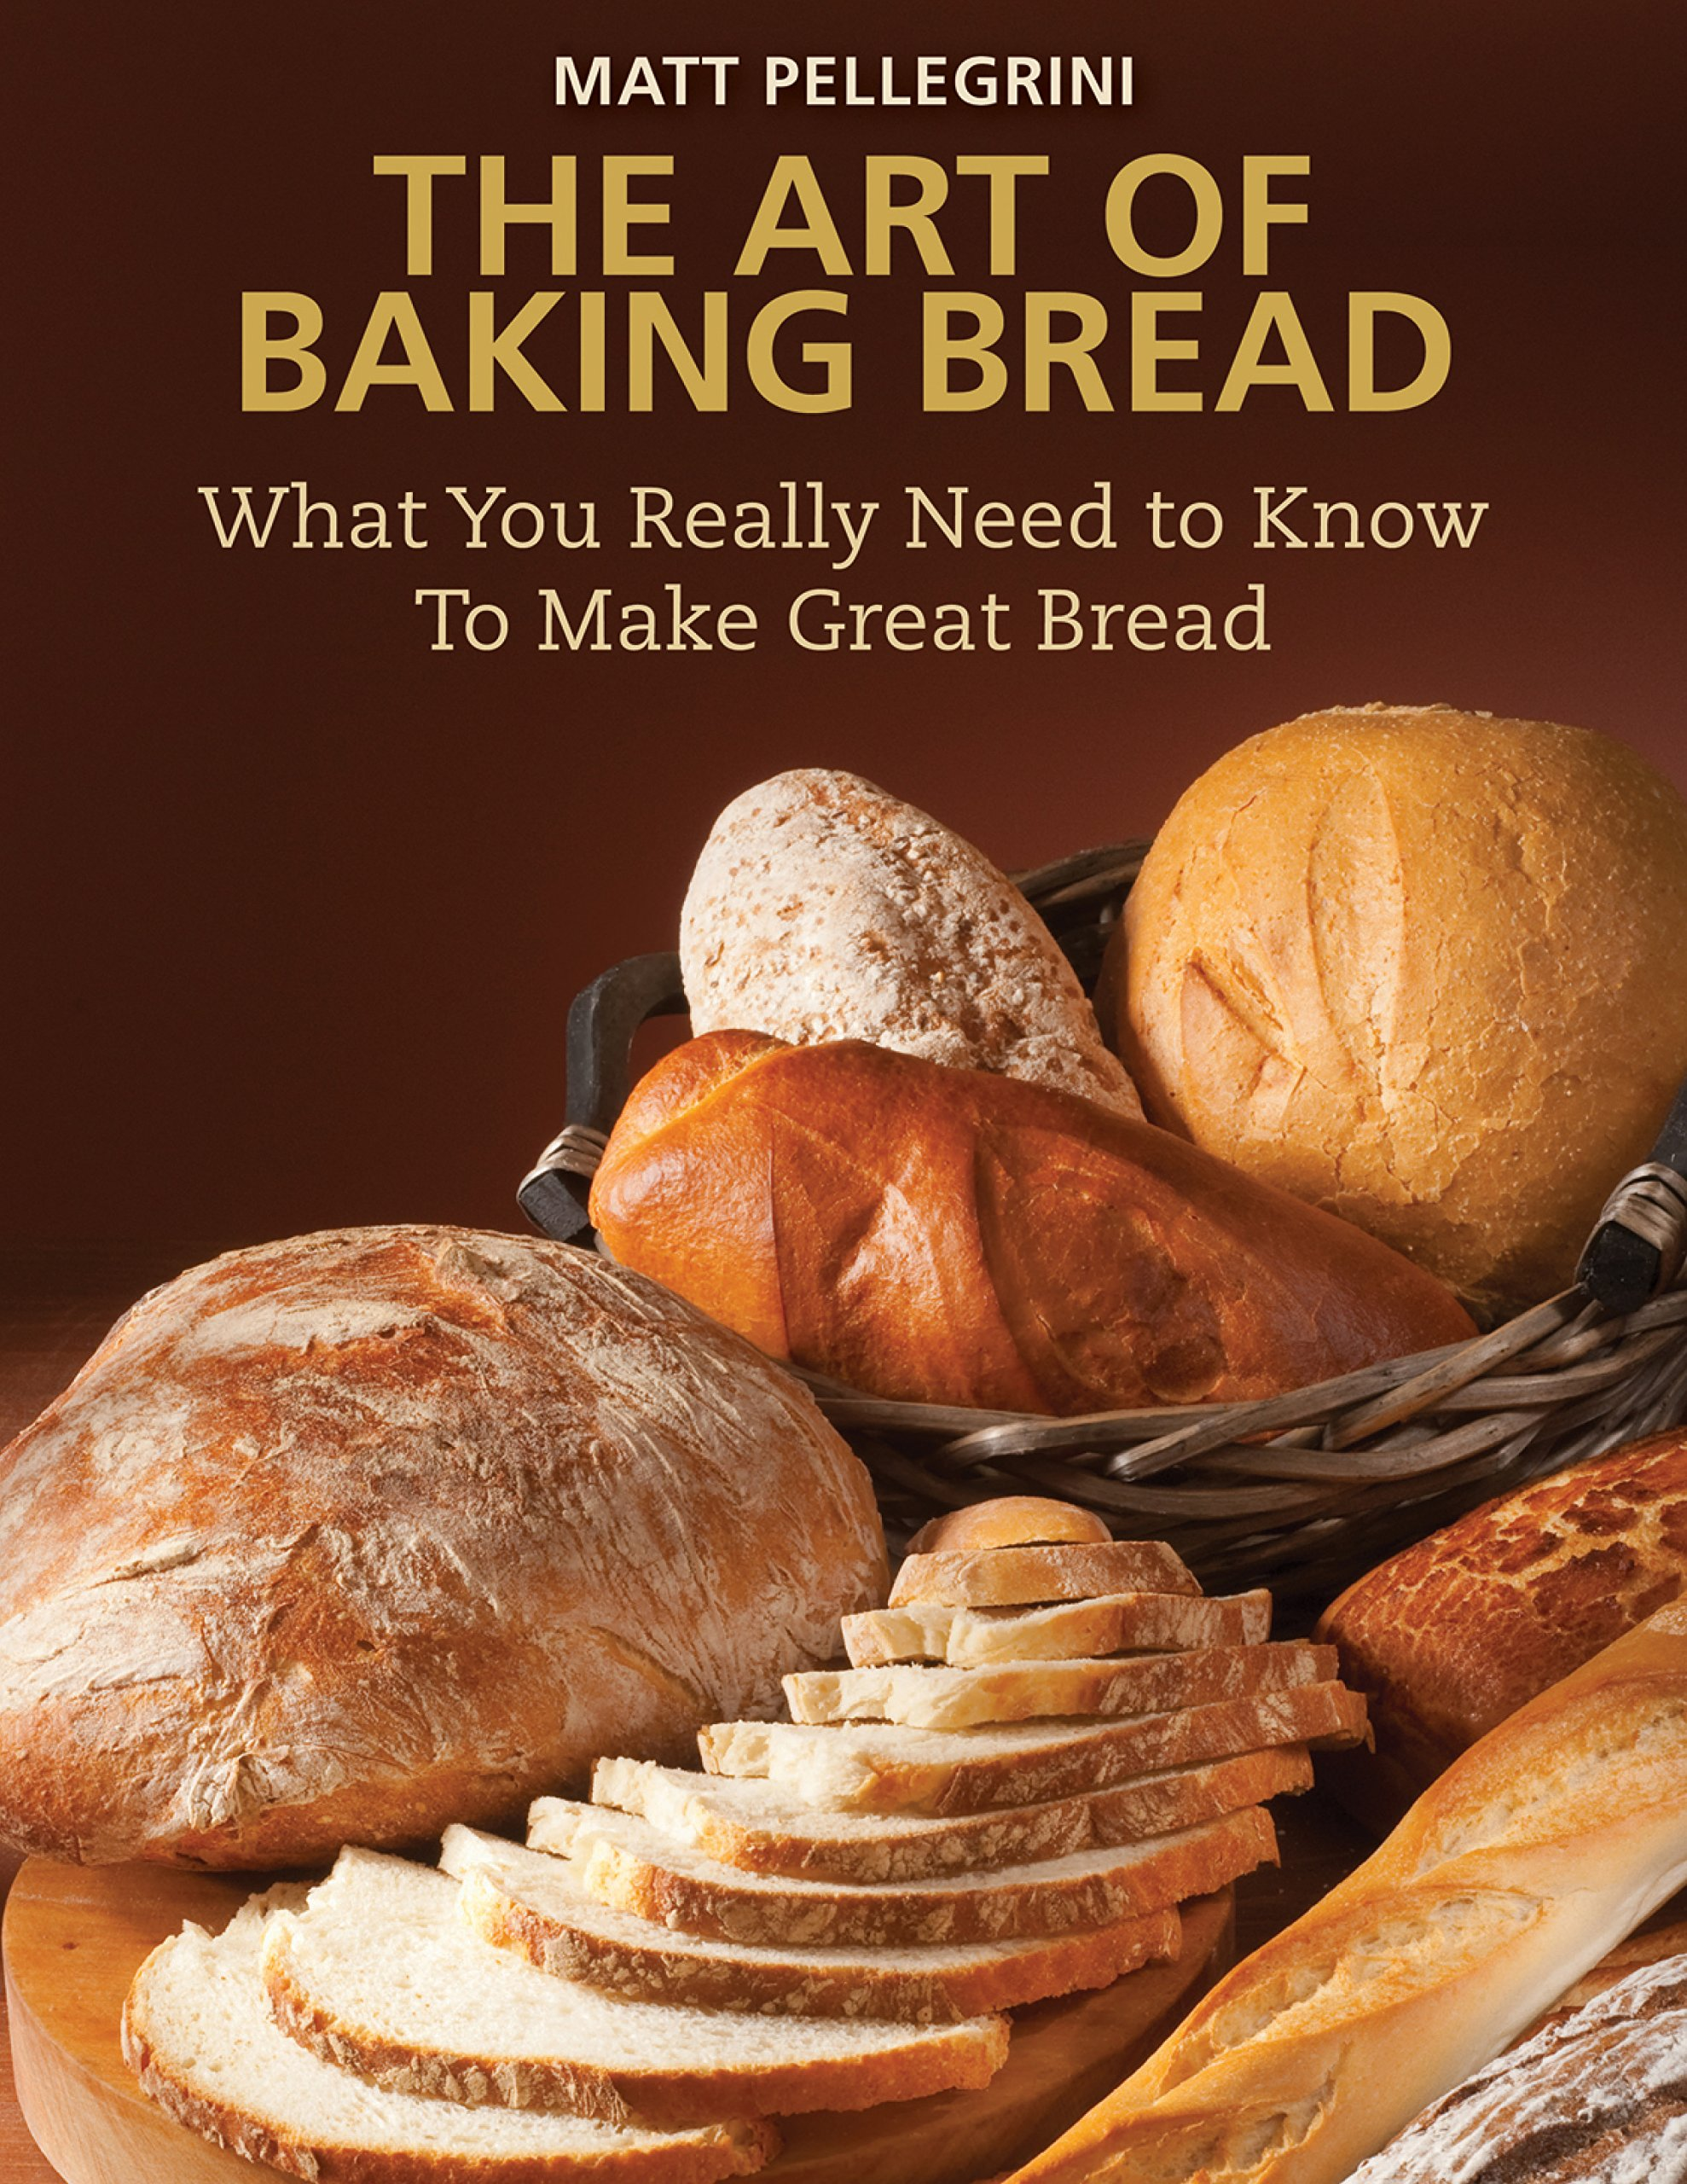 The Art of Baking Bread: What You Really Need to Know to Make Great Bread by Skyhorse Publishing